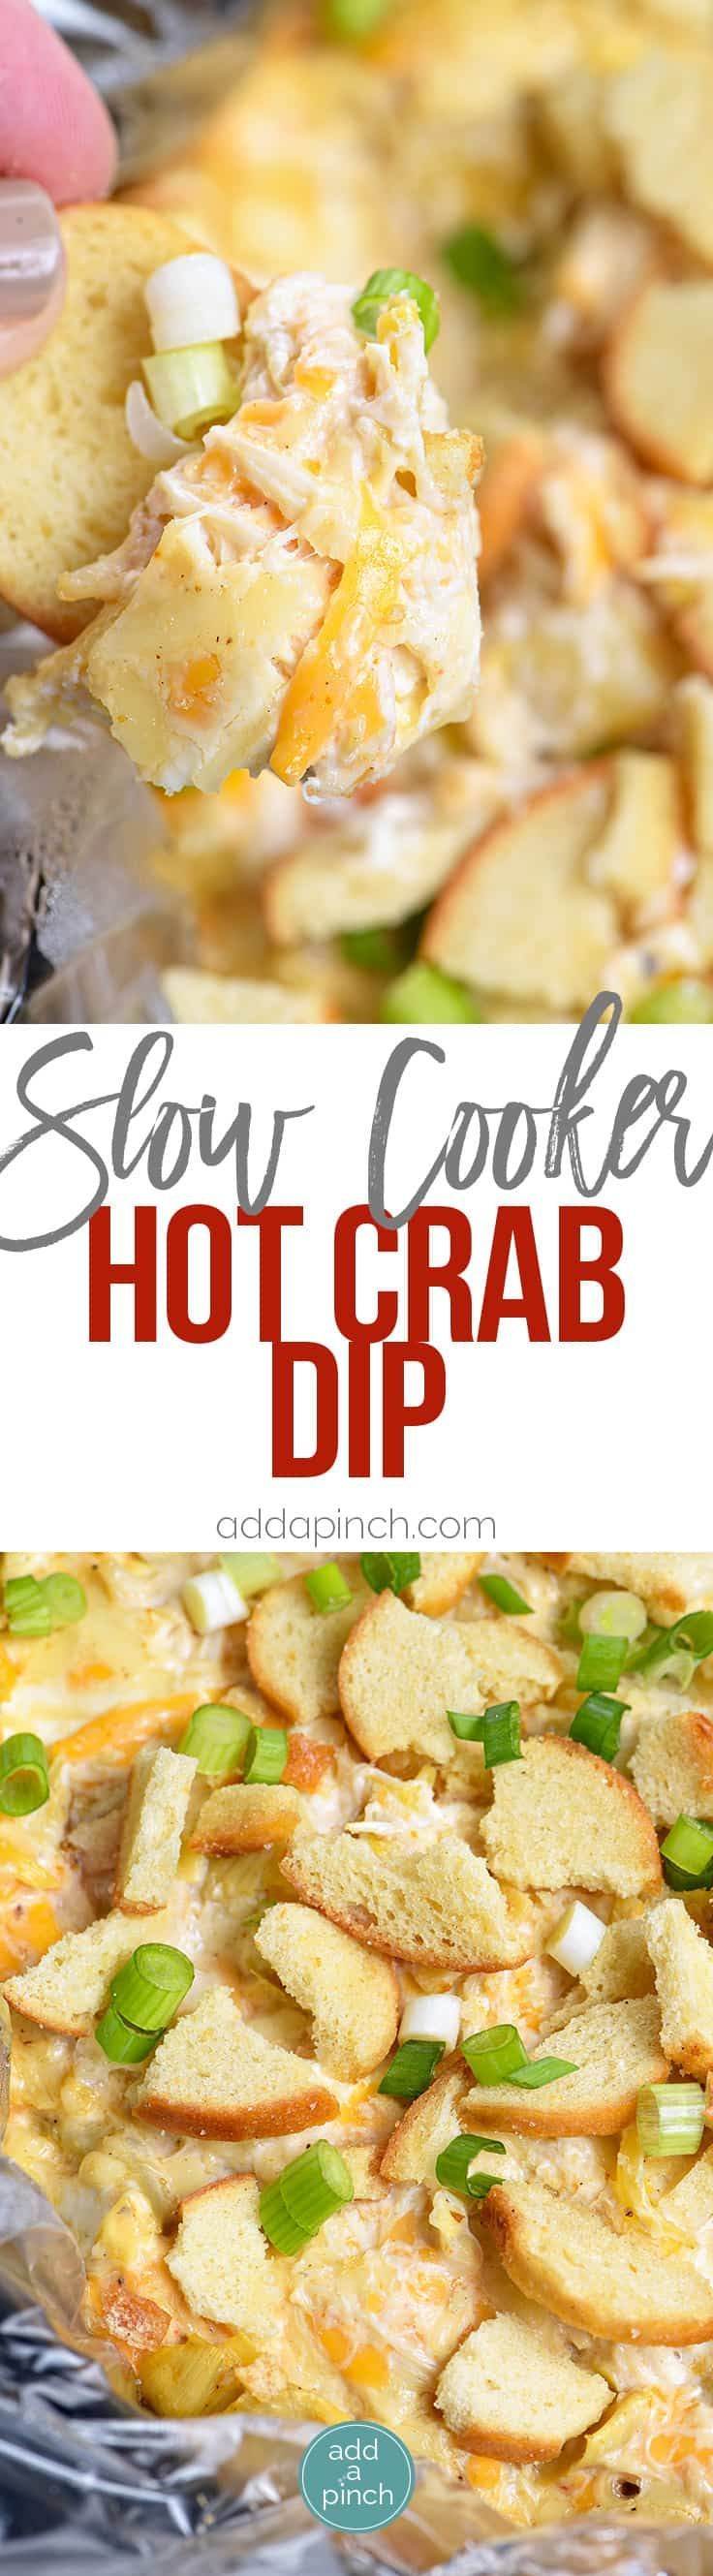 Slow Cooker Hot Crab Dip Recipe - A delicious hot crab dip recipe made even easier with the slow cooker! Serve with butter crackers or toasted bagels! Always a party favorite! // addapinch.com